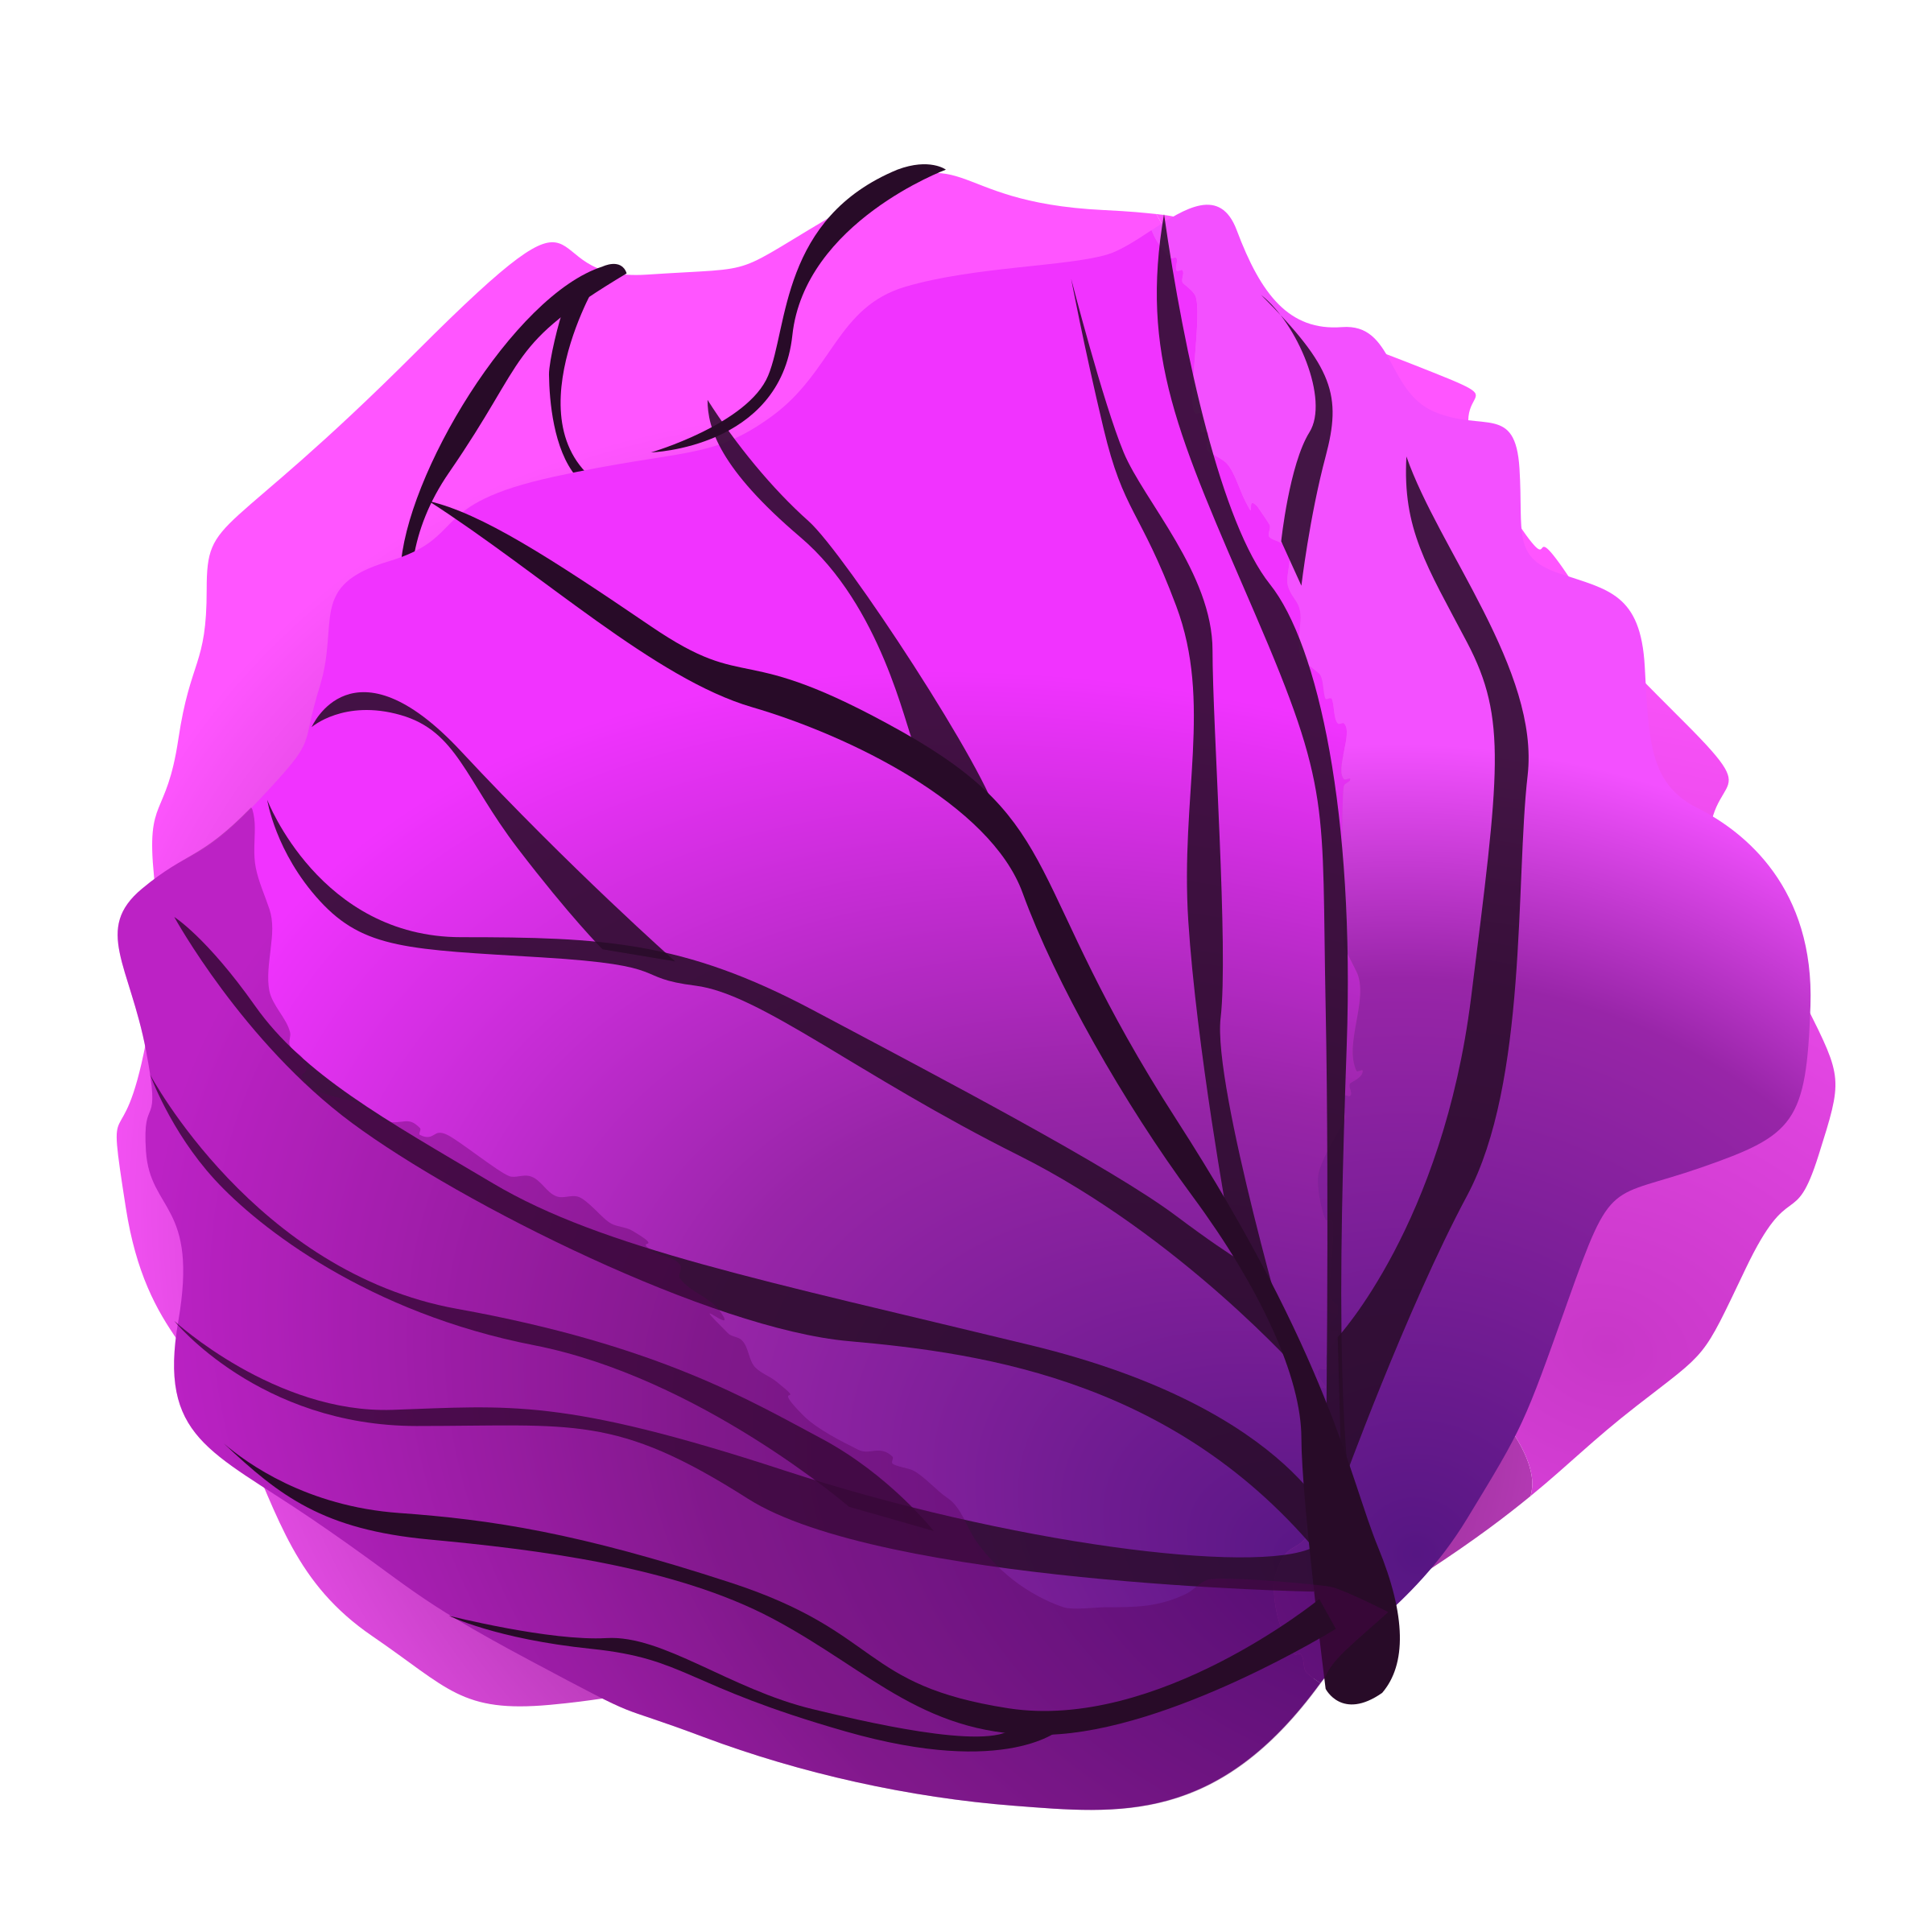 png transparent library Red big image png. Cabbage clipart animated.